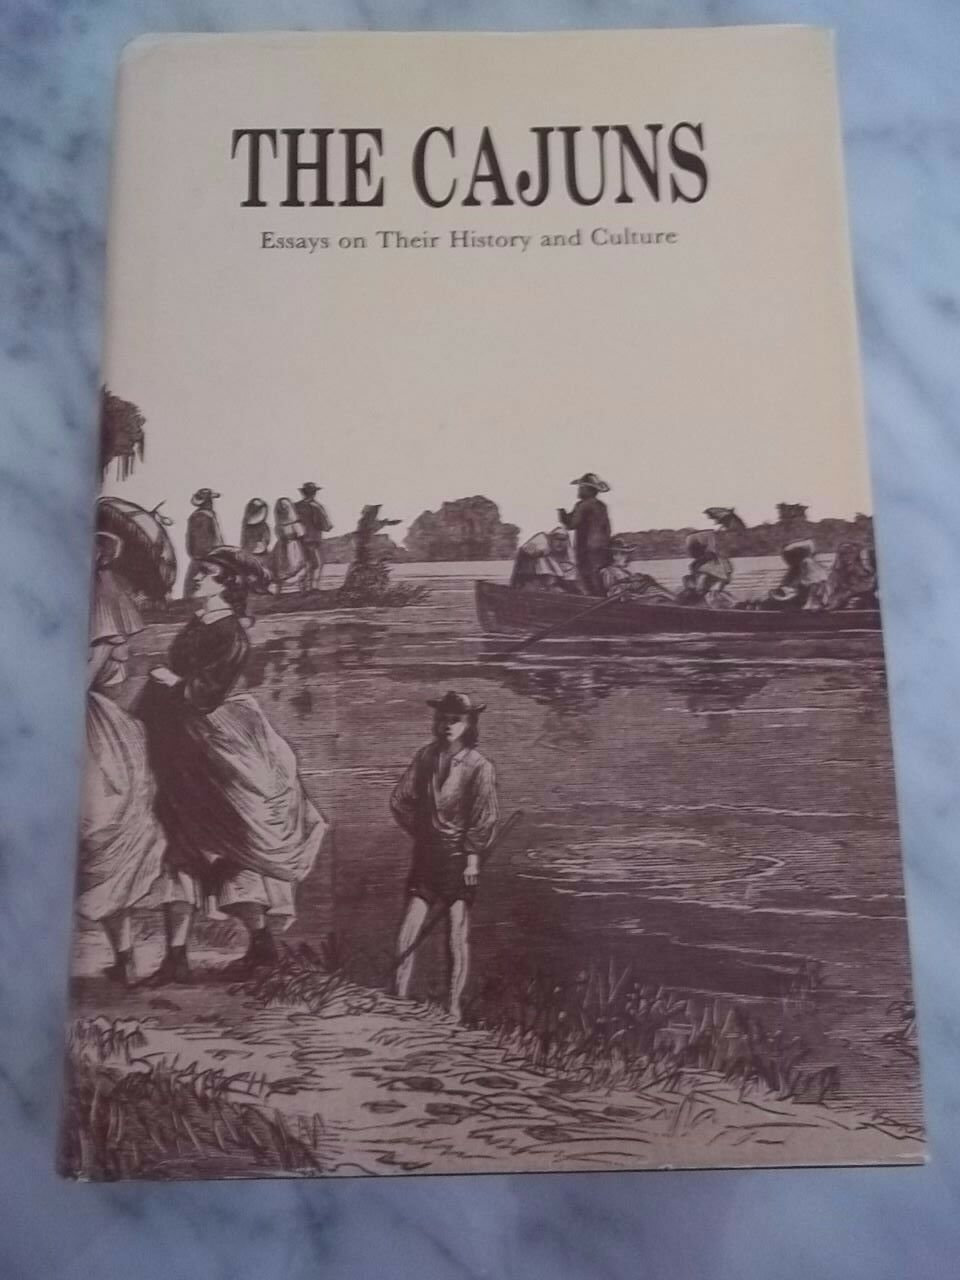 cajun culture essay Essay on culture: free examples of essays, research and term papers examples of culture essay topics, questions and thesis satatements.